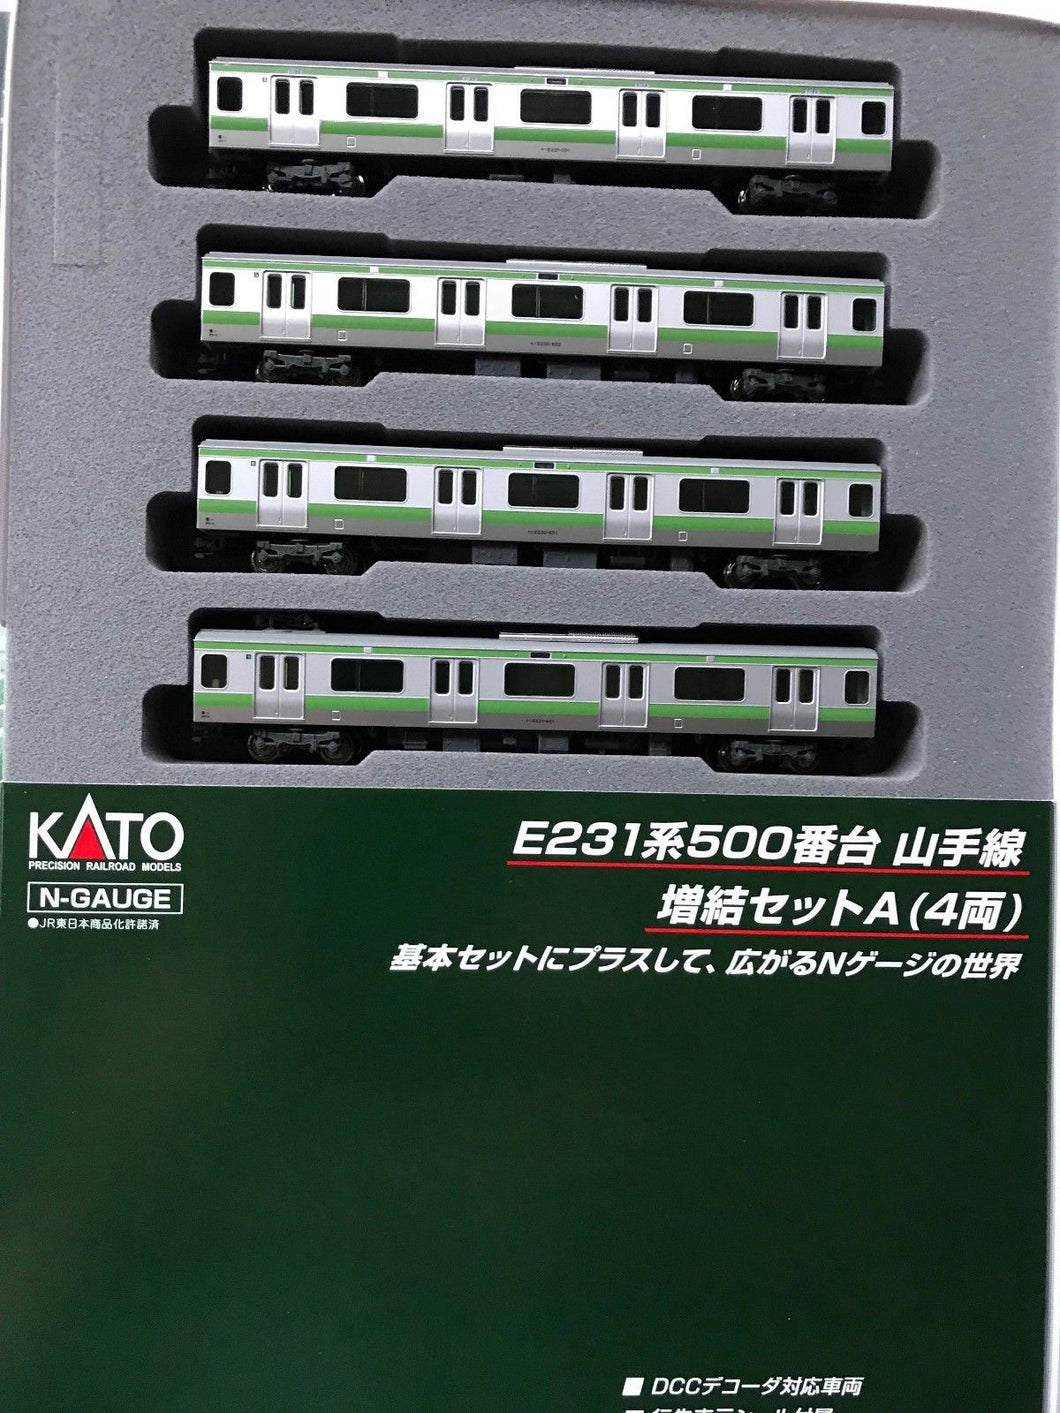 Kato 10-891 JR E231-500 Yamanote Line Add On A 4 Cars N Scale